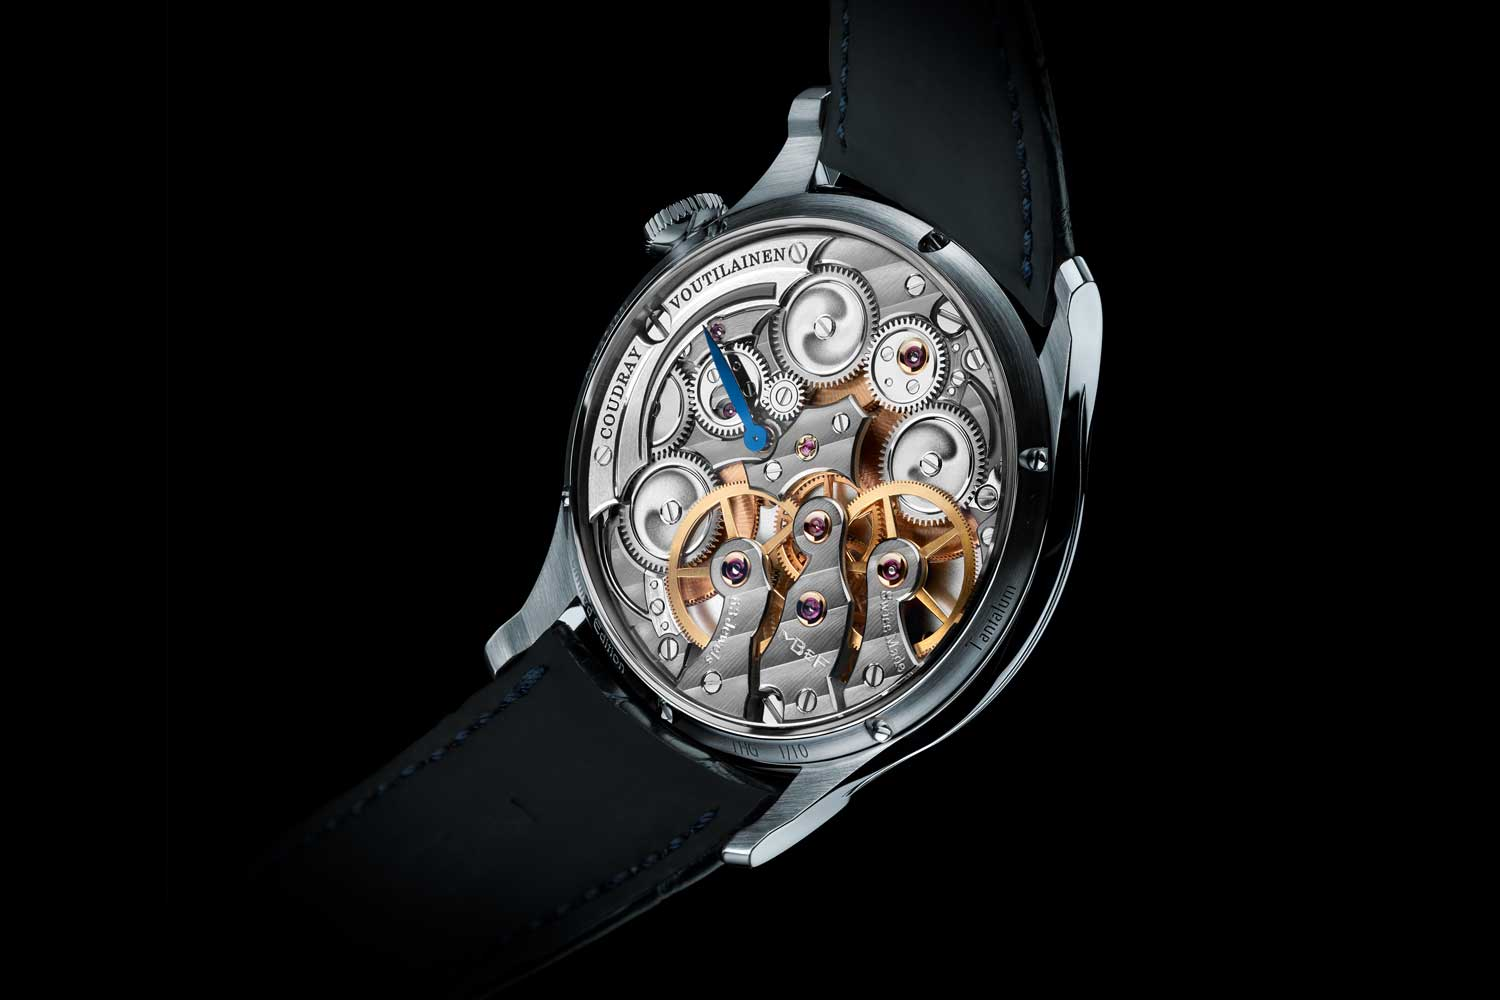 MB&F LM Thunderdome The Hour Glass Commemorative Edition in tantalum